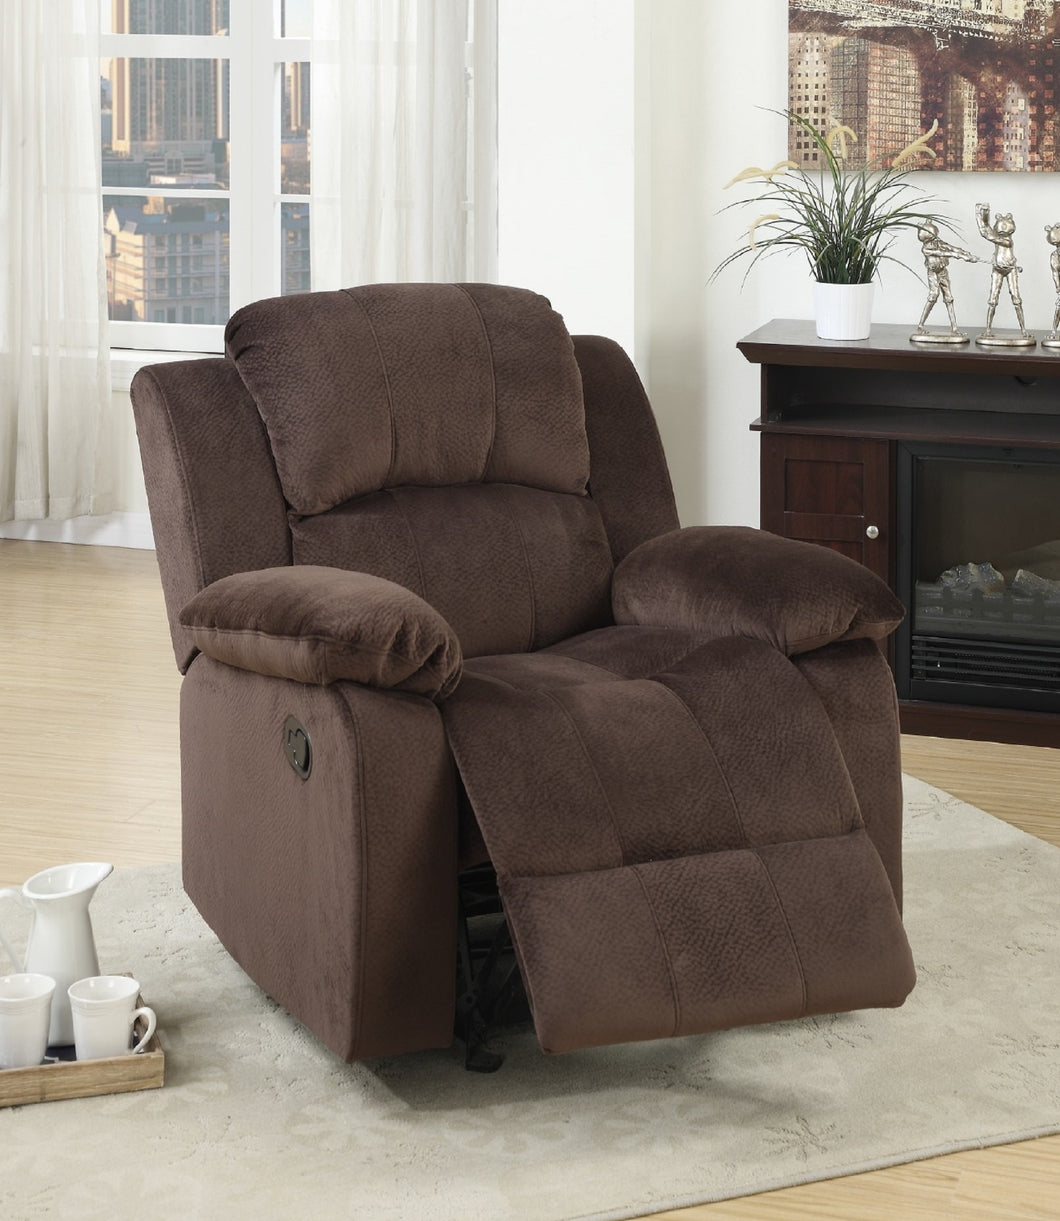 F6713 - Chocolate Rocker Recliner